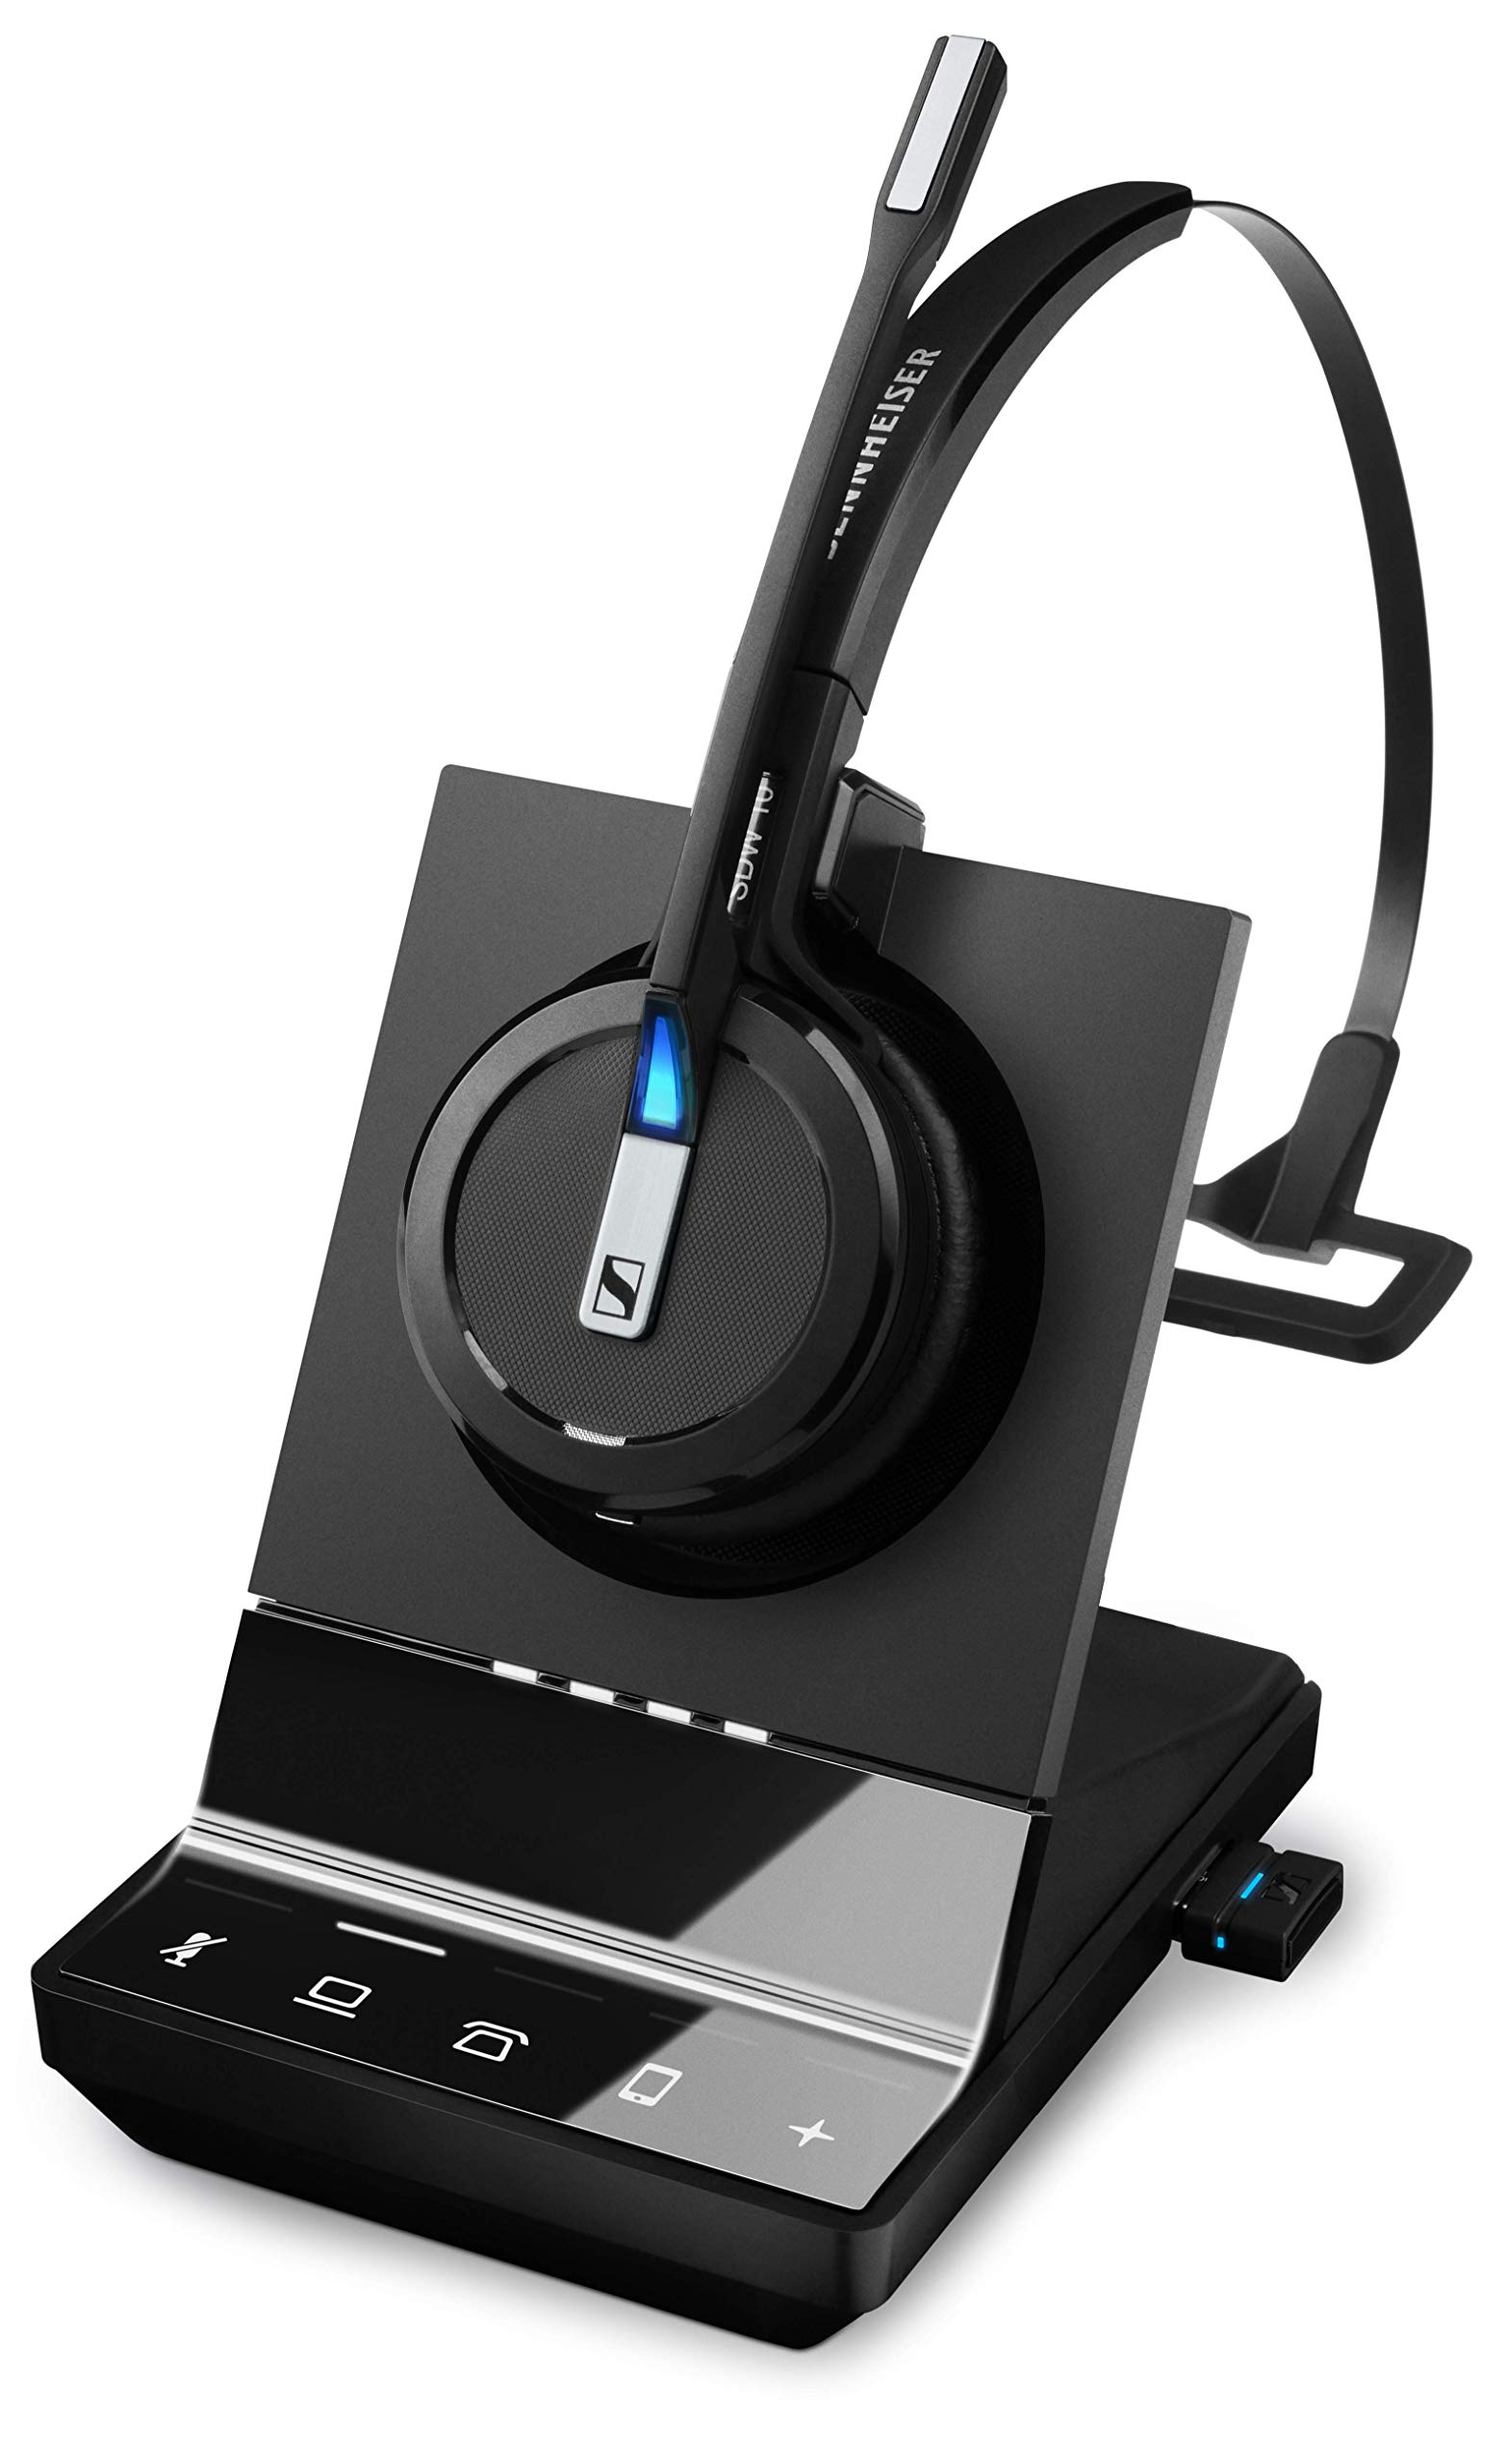 Amazon Com Sennheiser Sdw 5016 507016 Single Sided Wireless Dect Headset For Desk Phone Softphone Pc Mobile Phone Connection Dual Microphone Ultra Noise Canceling Black 3 Inches Office Products